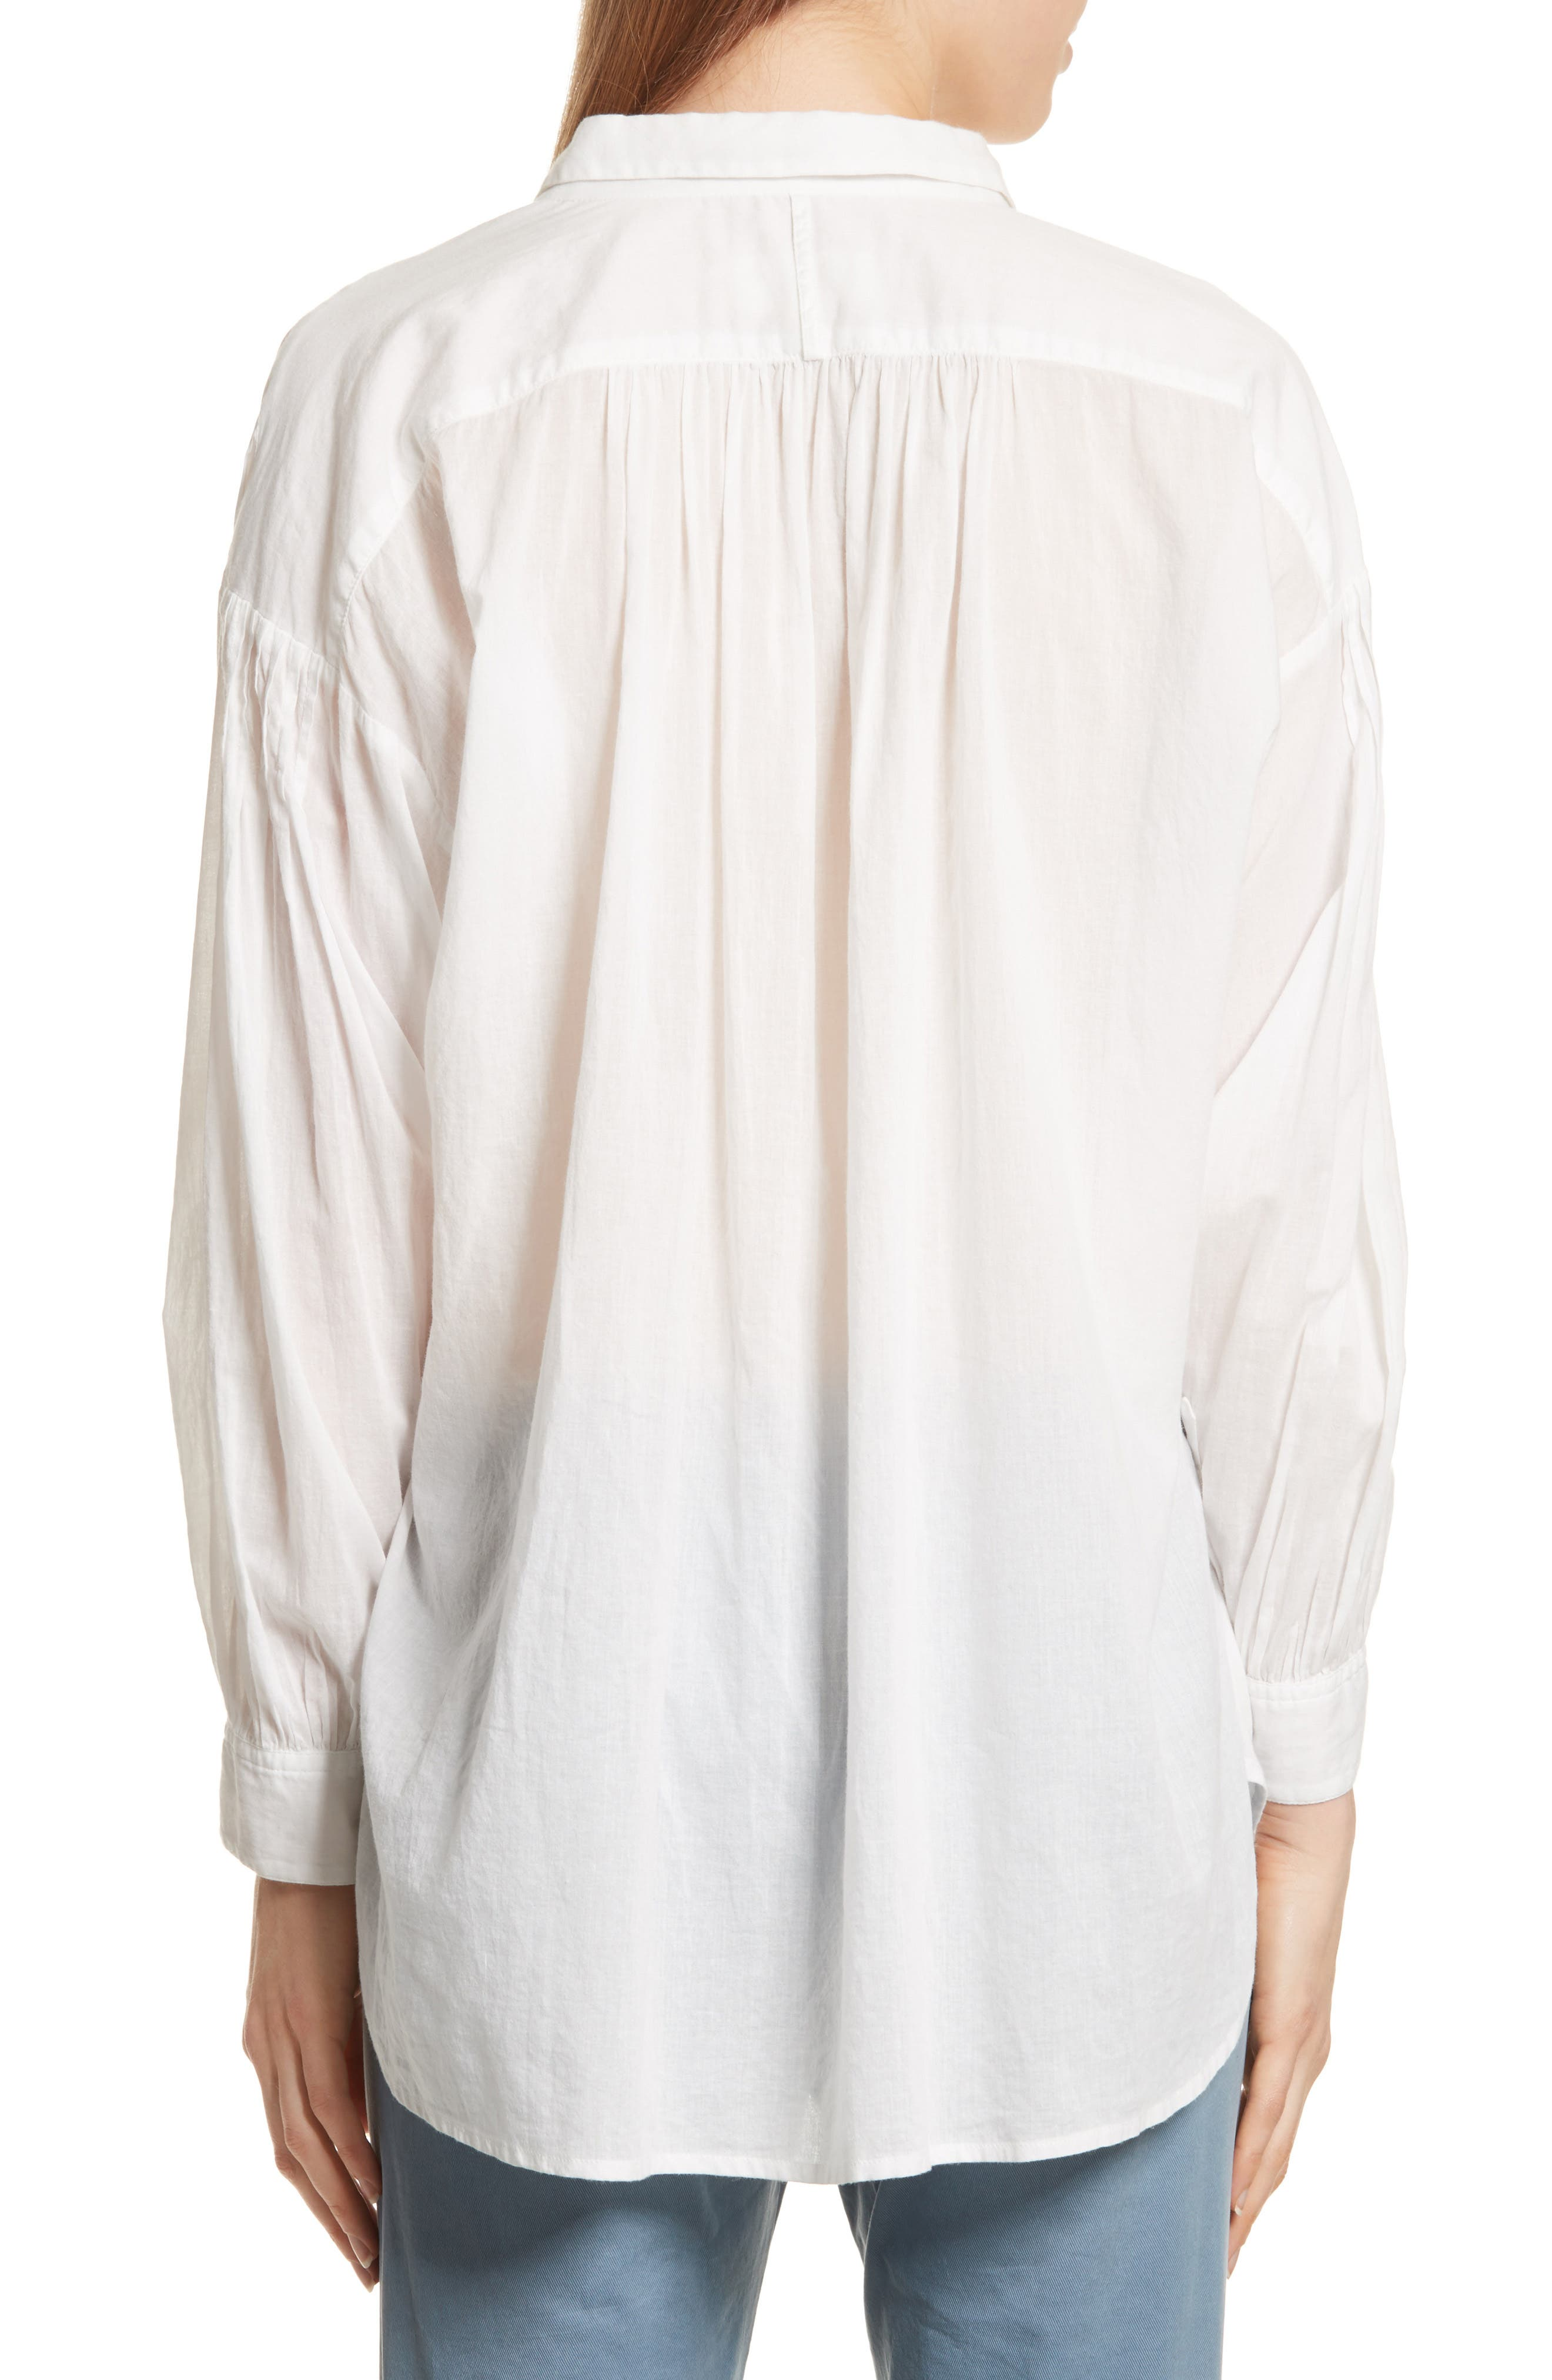 Miles Gathered Yoke Blouse,                             Alternate thumbnail 2, color,                             902